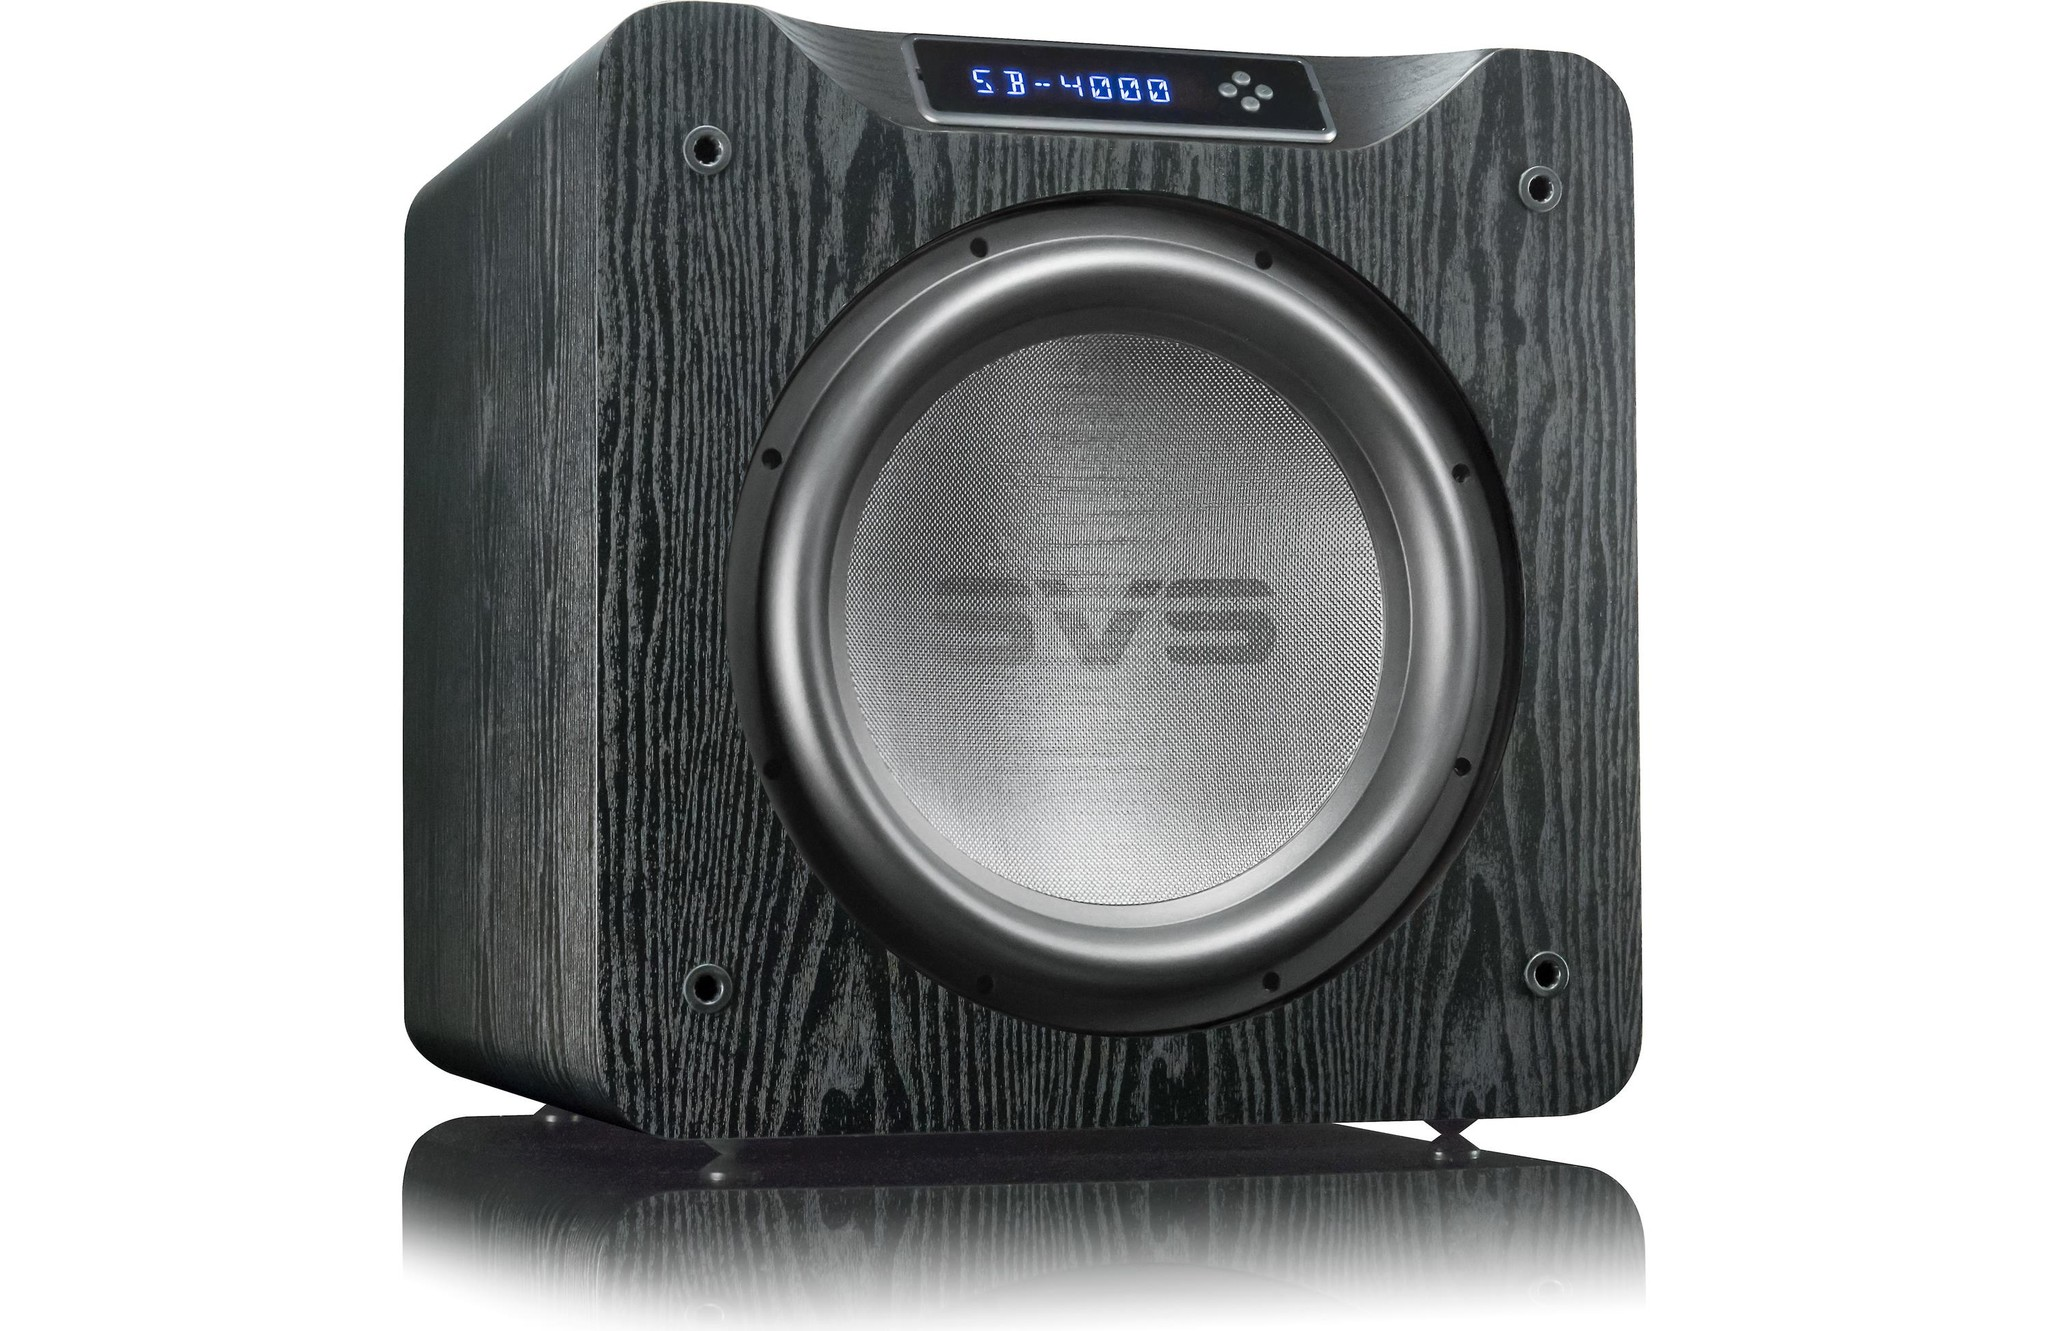 "SVS SVS SB-4000 13.5"" 1200W RMS Powered Subwoofer w/ App Control"